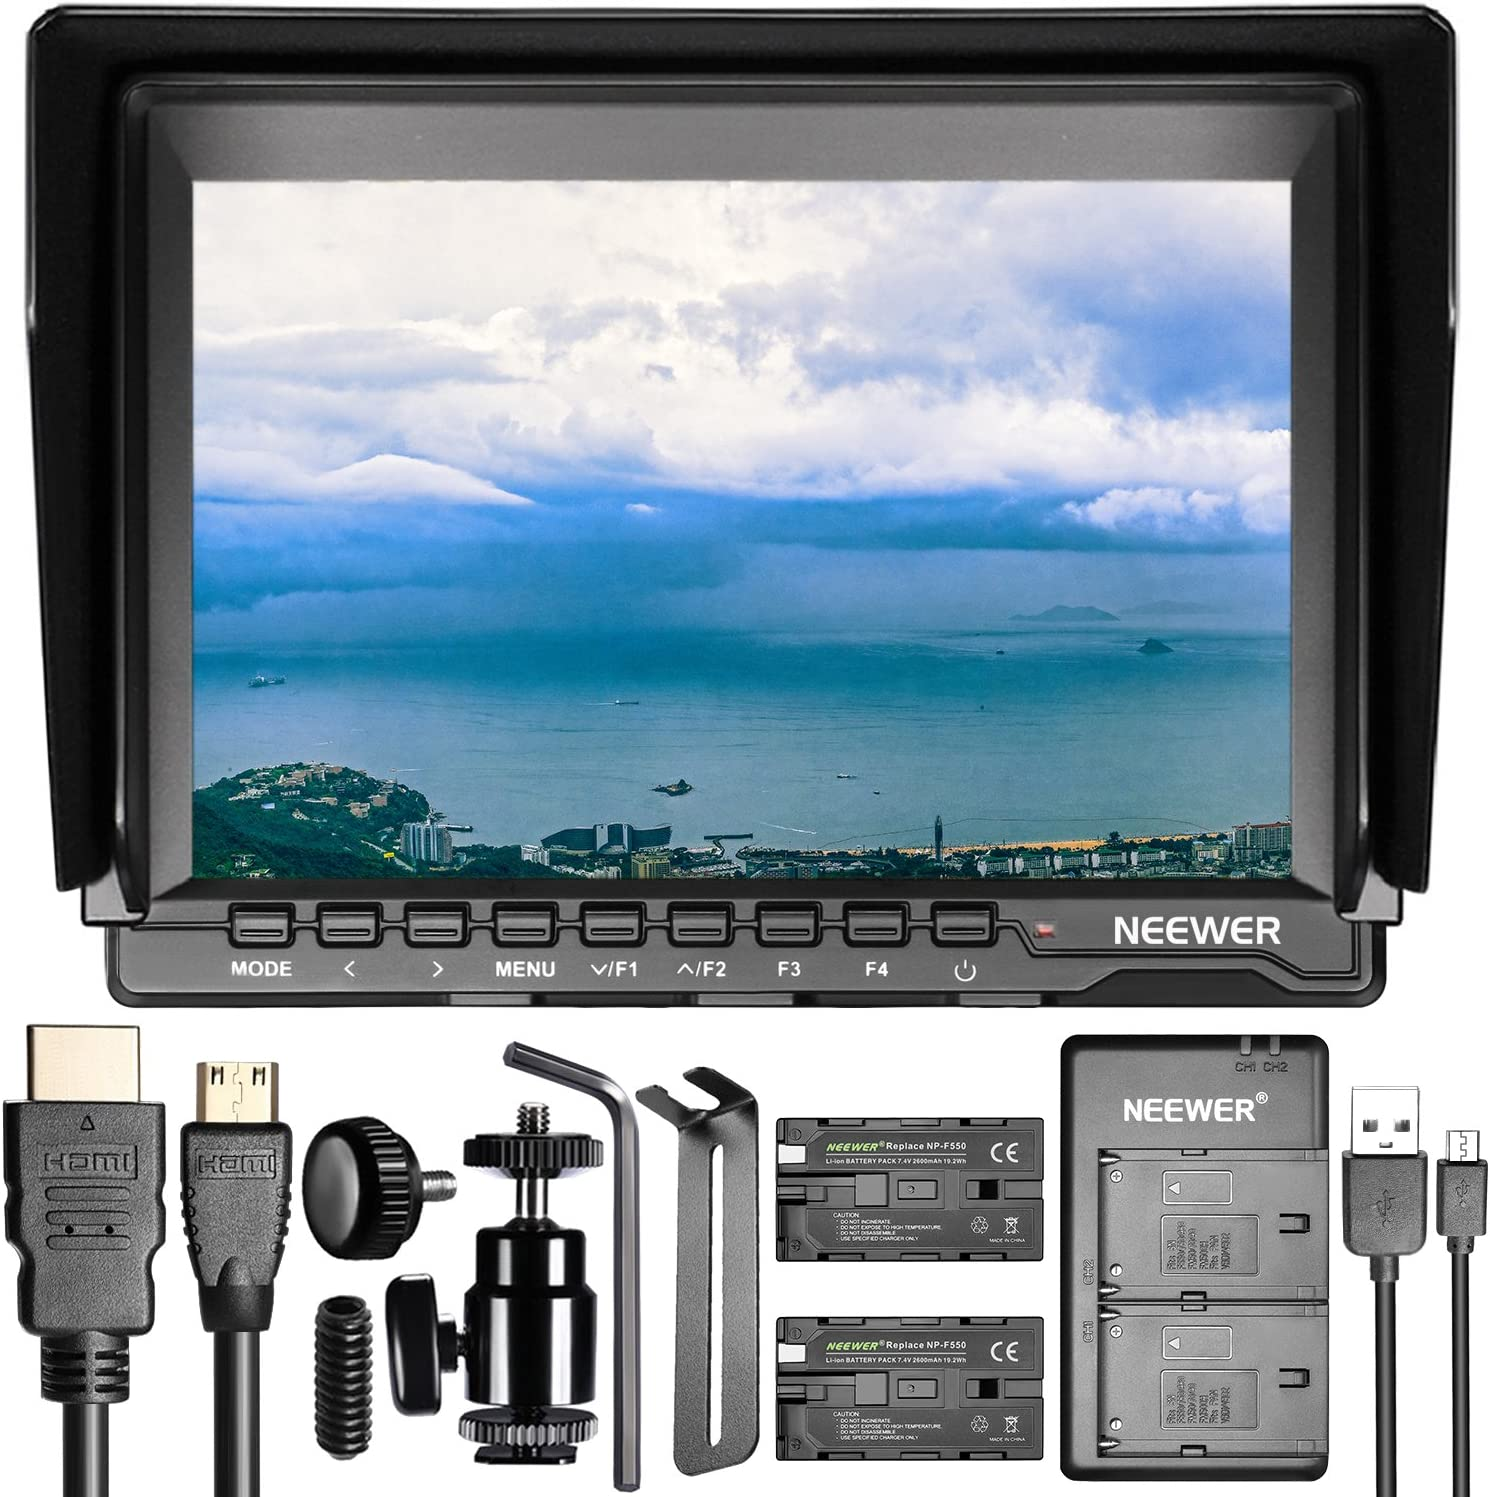 7 inches Camera Field Monitor Kit Neewer NW759 1280x800 IPS Screen Monitor with Dual USB Charger and 2 Packs LP-E6 Replacement Li-ion Battery for Nikon Sony Canon Olympus Pentax Panasonic Cameras C